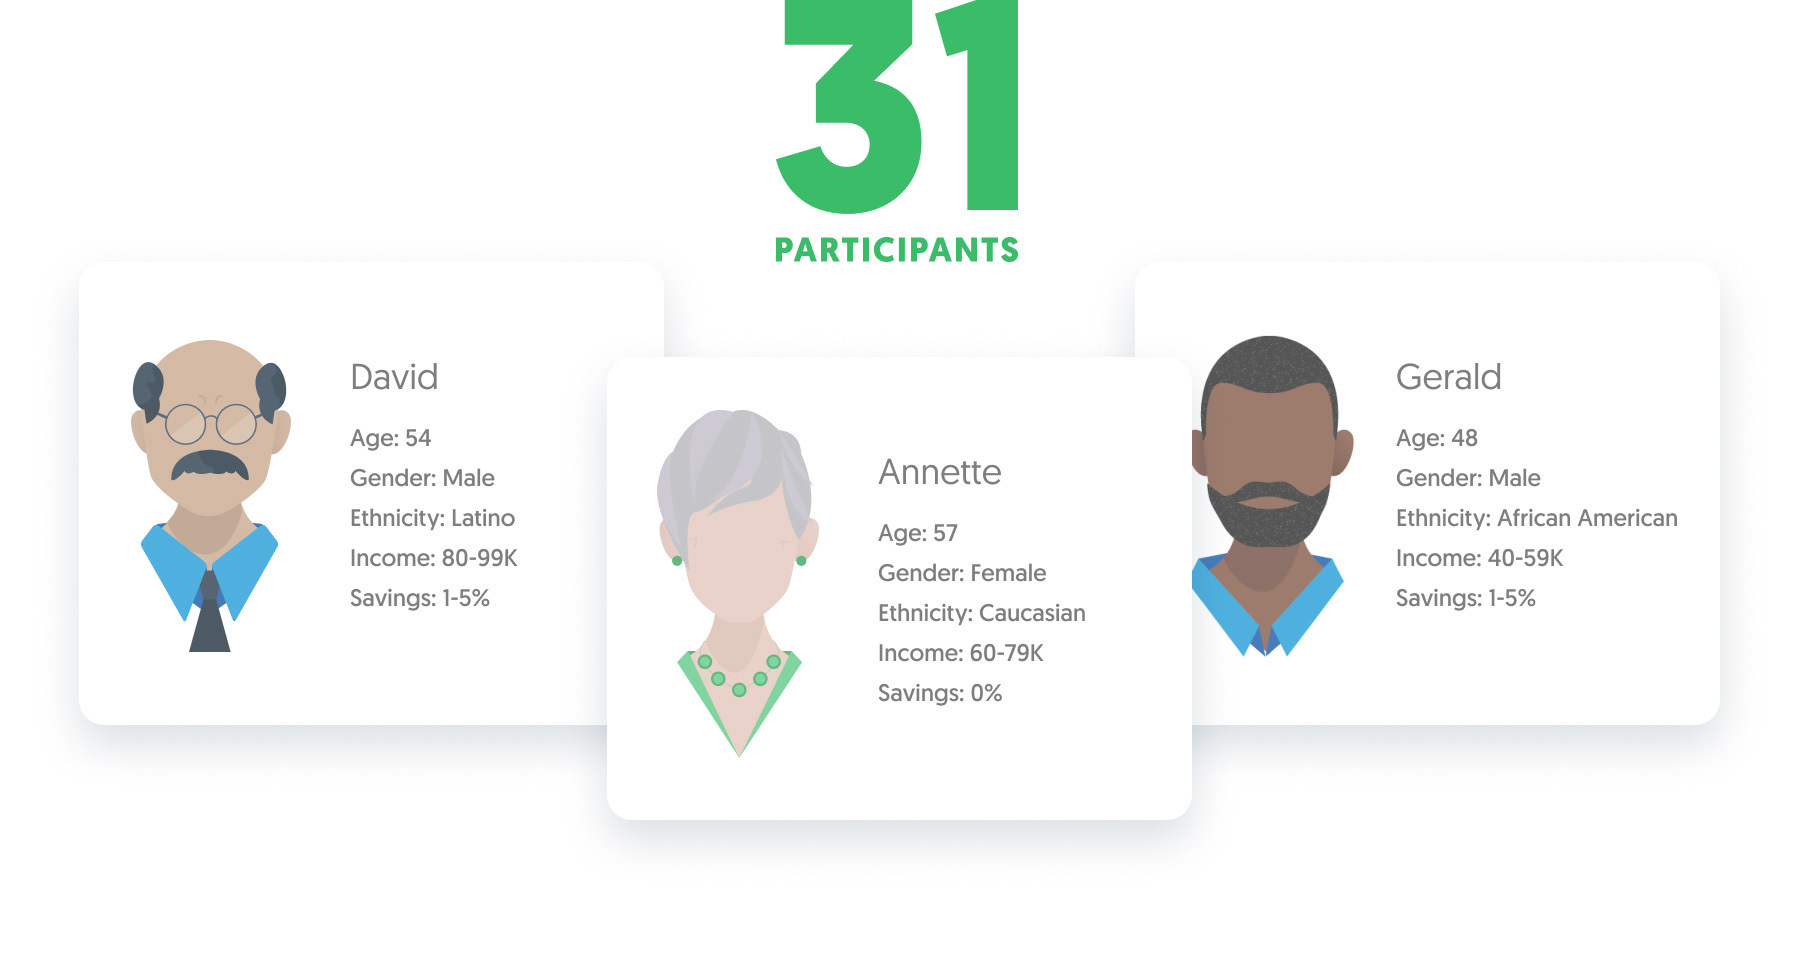 An illustration of three user profile cards, showing that we interviewed 31 participants from a variety of backgrounds.